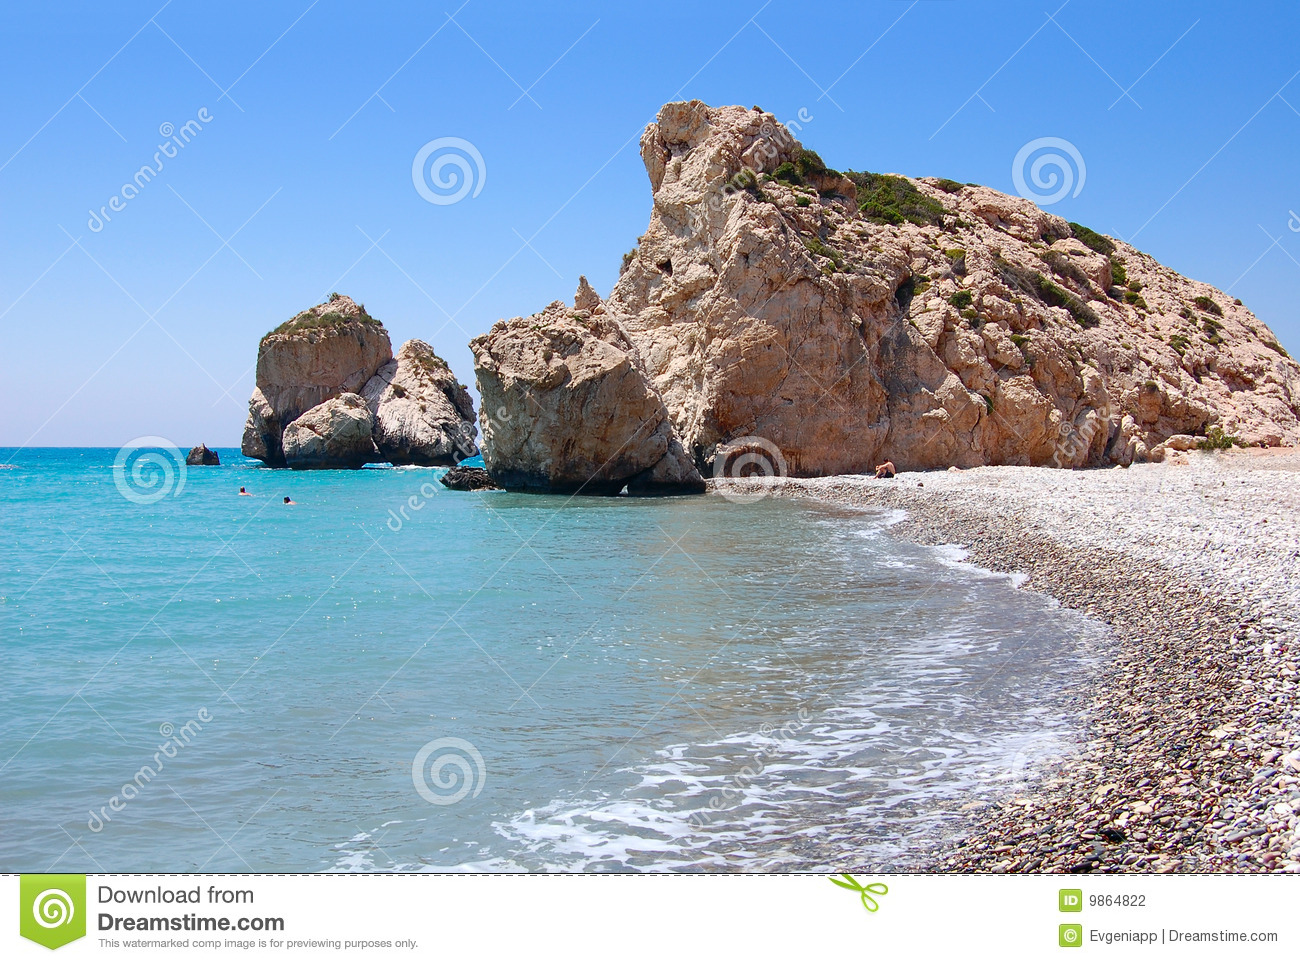 felsen von aphrodite oder petra tou ramiou stockfoto bild von mythologie griechenland 9864822. Black Bedroom Furniture Sets. Home Design Ideas